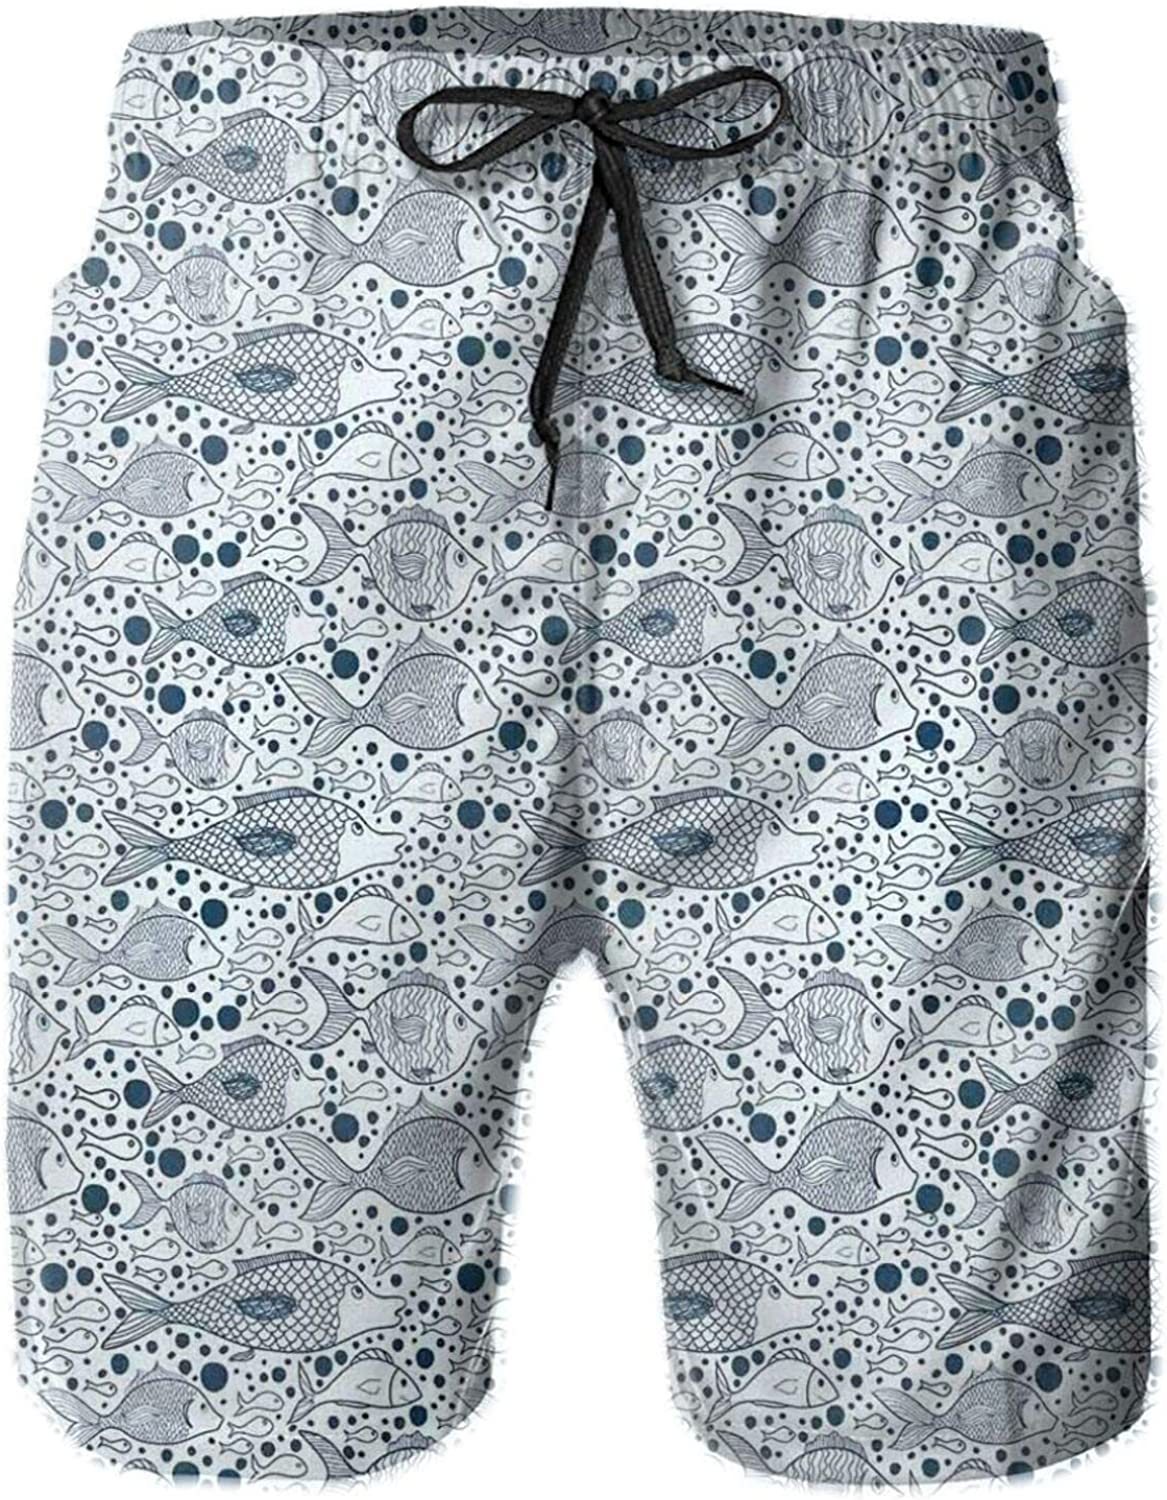 MUJAQ Underwater Life Theme Drawing with Big Little Fishes and Bubbles Drawstring Waist Beach Shorts for Men Swim Trucks Board Shorts with Mesh Lining,XL